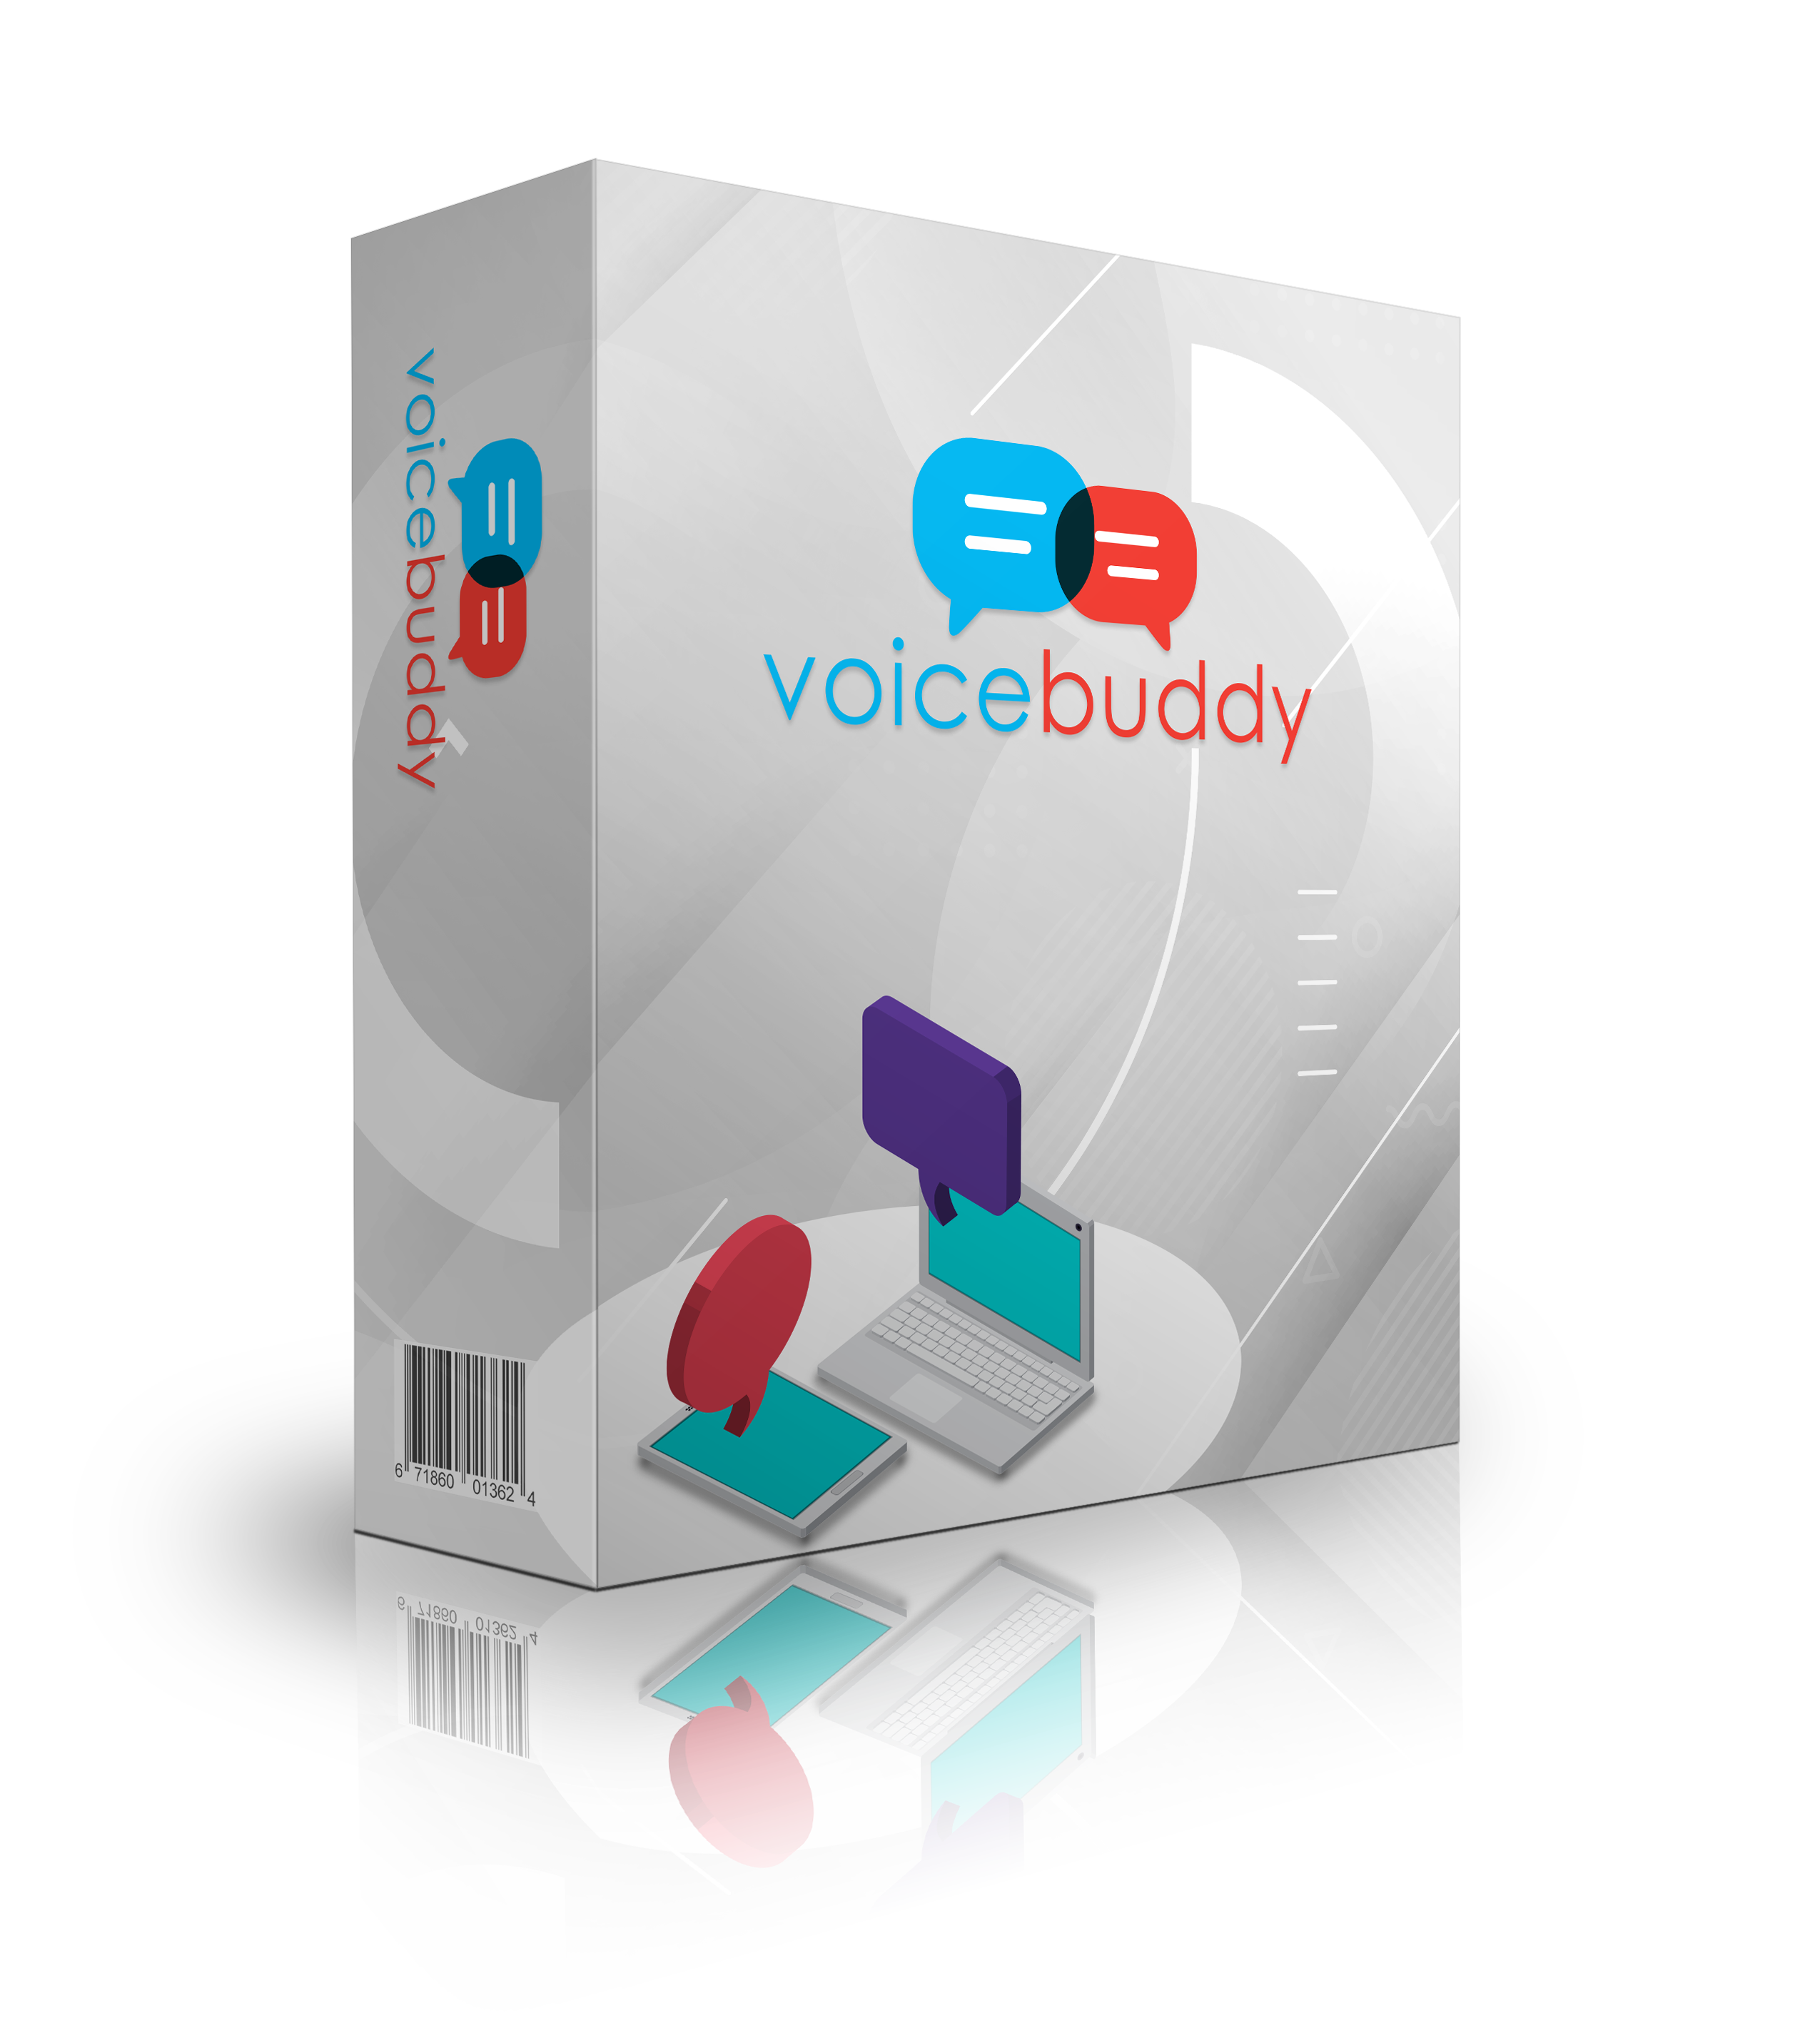 VoiceBuddy